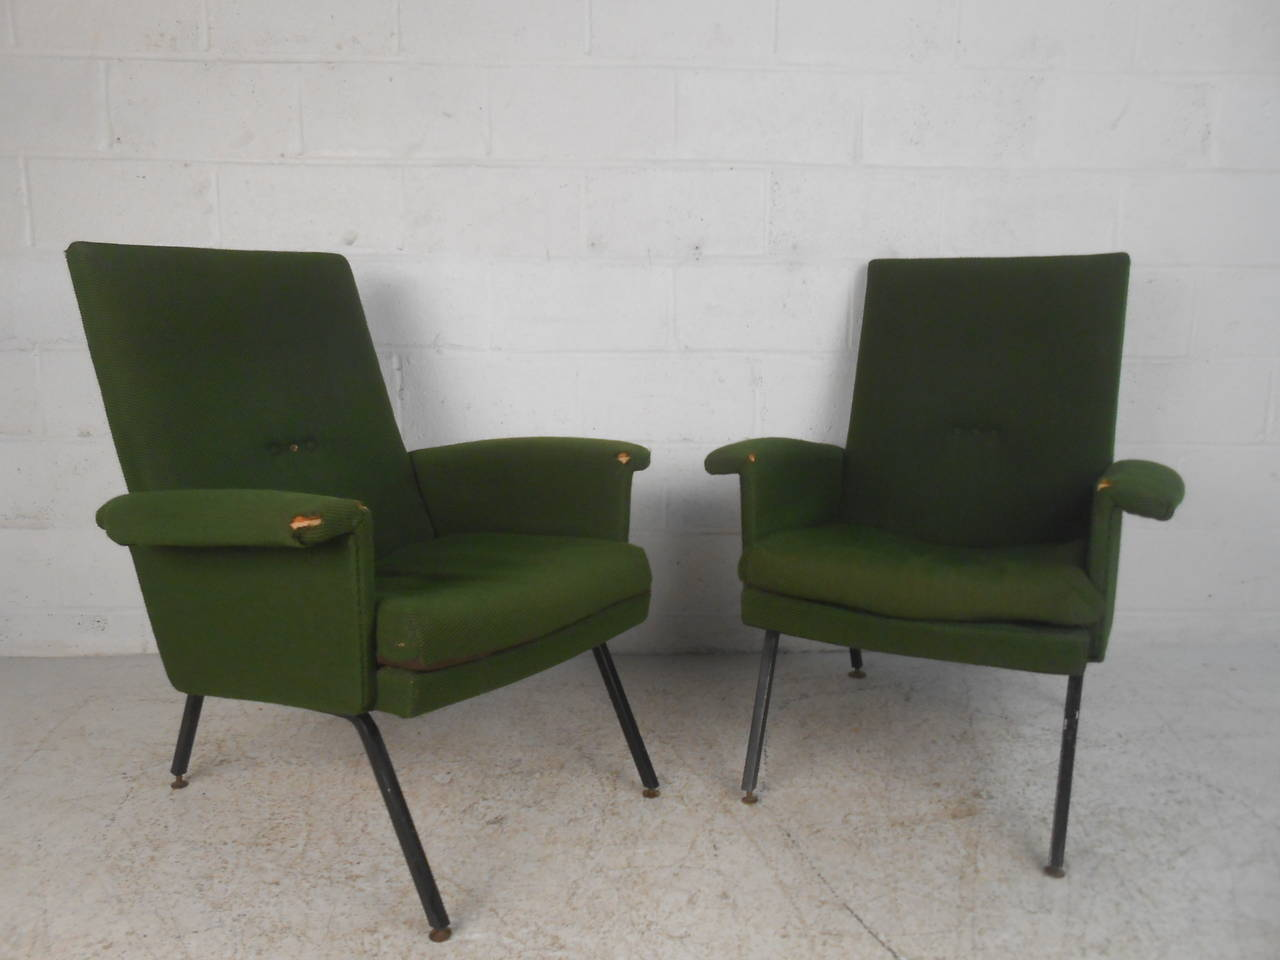 This stylish pair of Mid-Century lounge chairs feature shapely high back seat, with comfortable upholstered arm rests and sturdy metal legs. Unique Italian modern style makes this the perfect set for home or business setting. Please confirm item